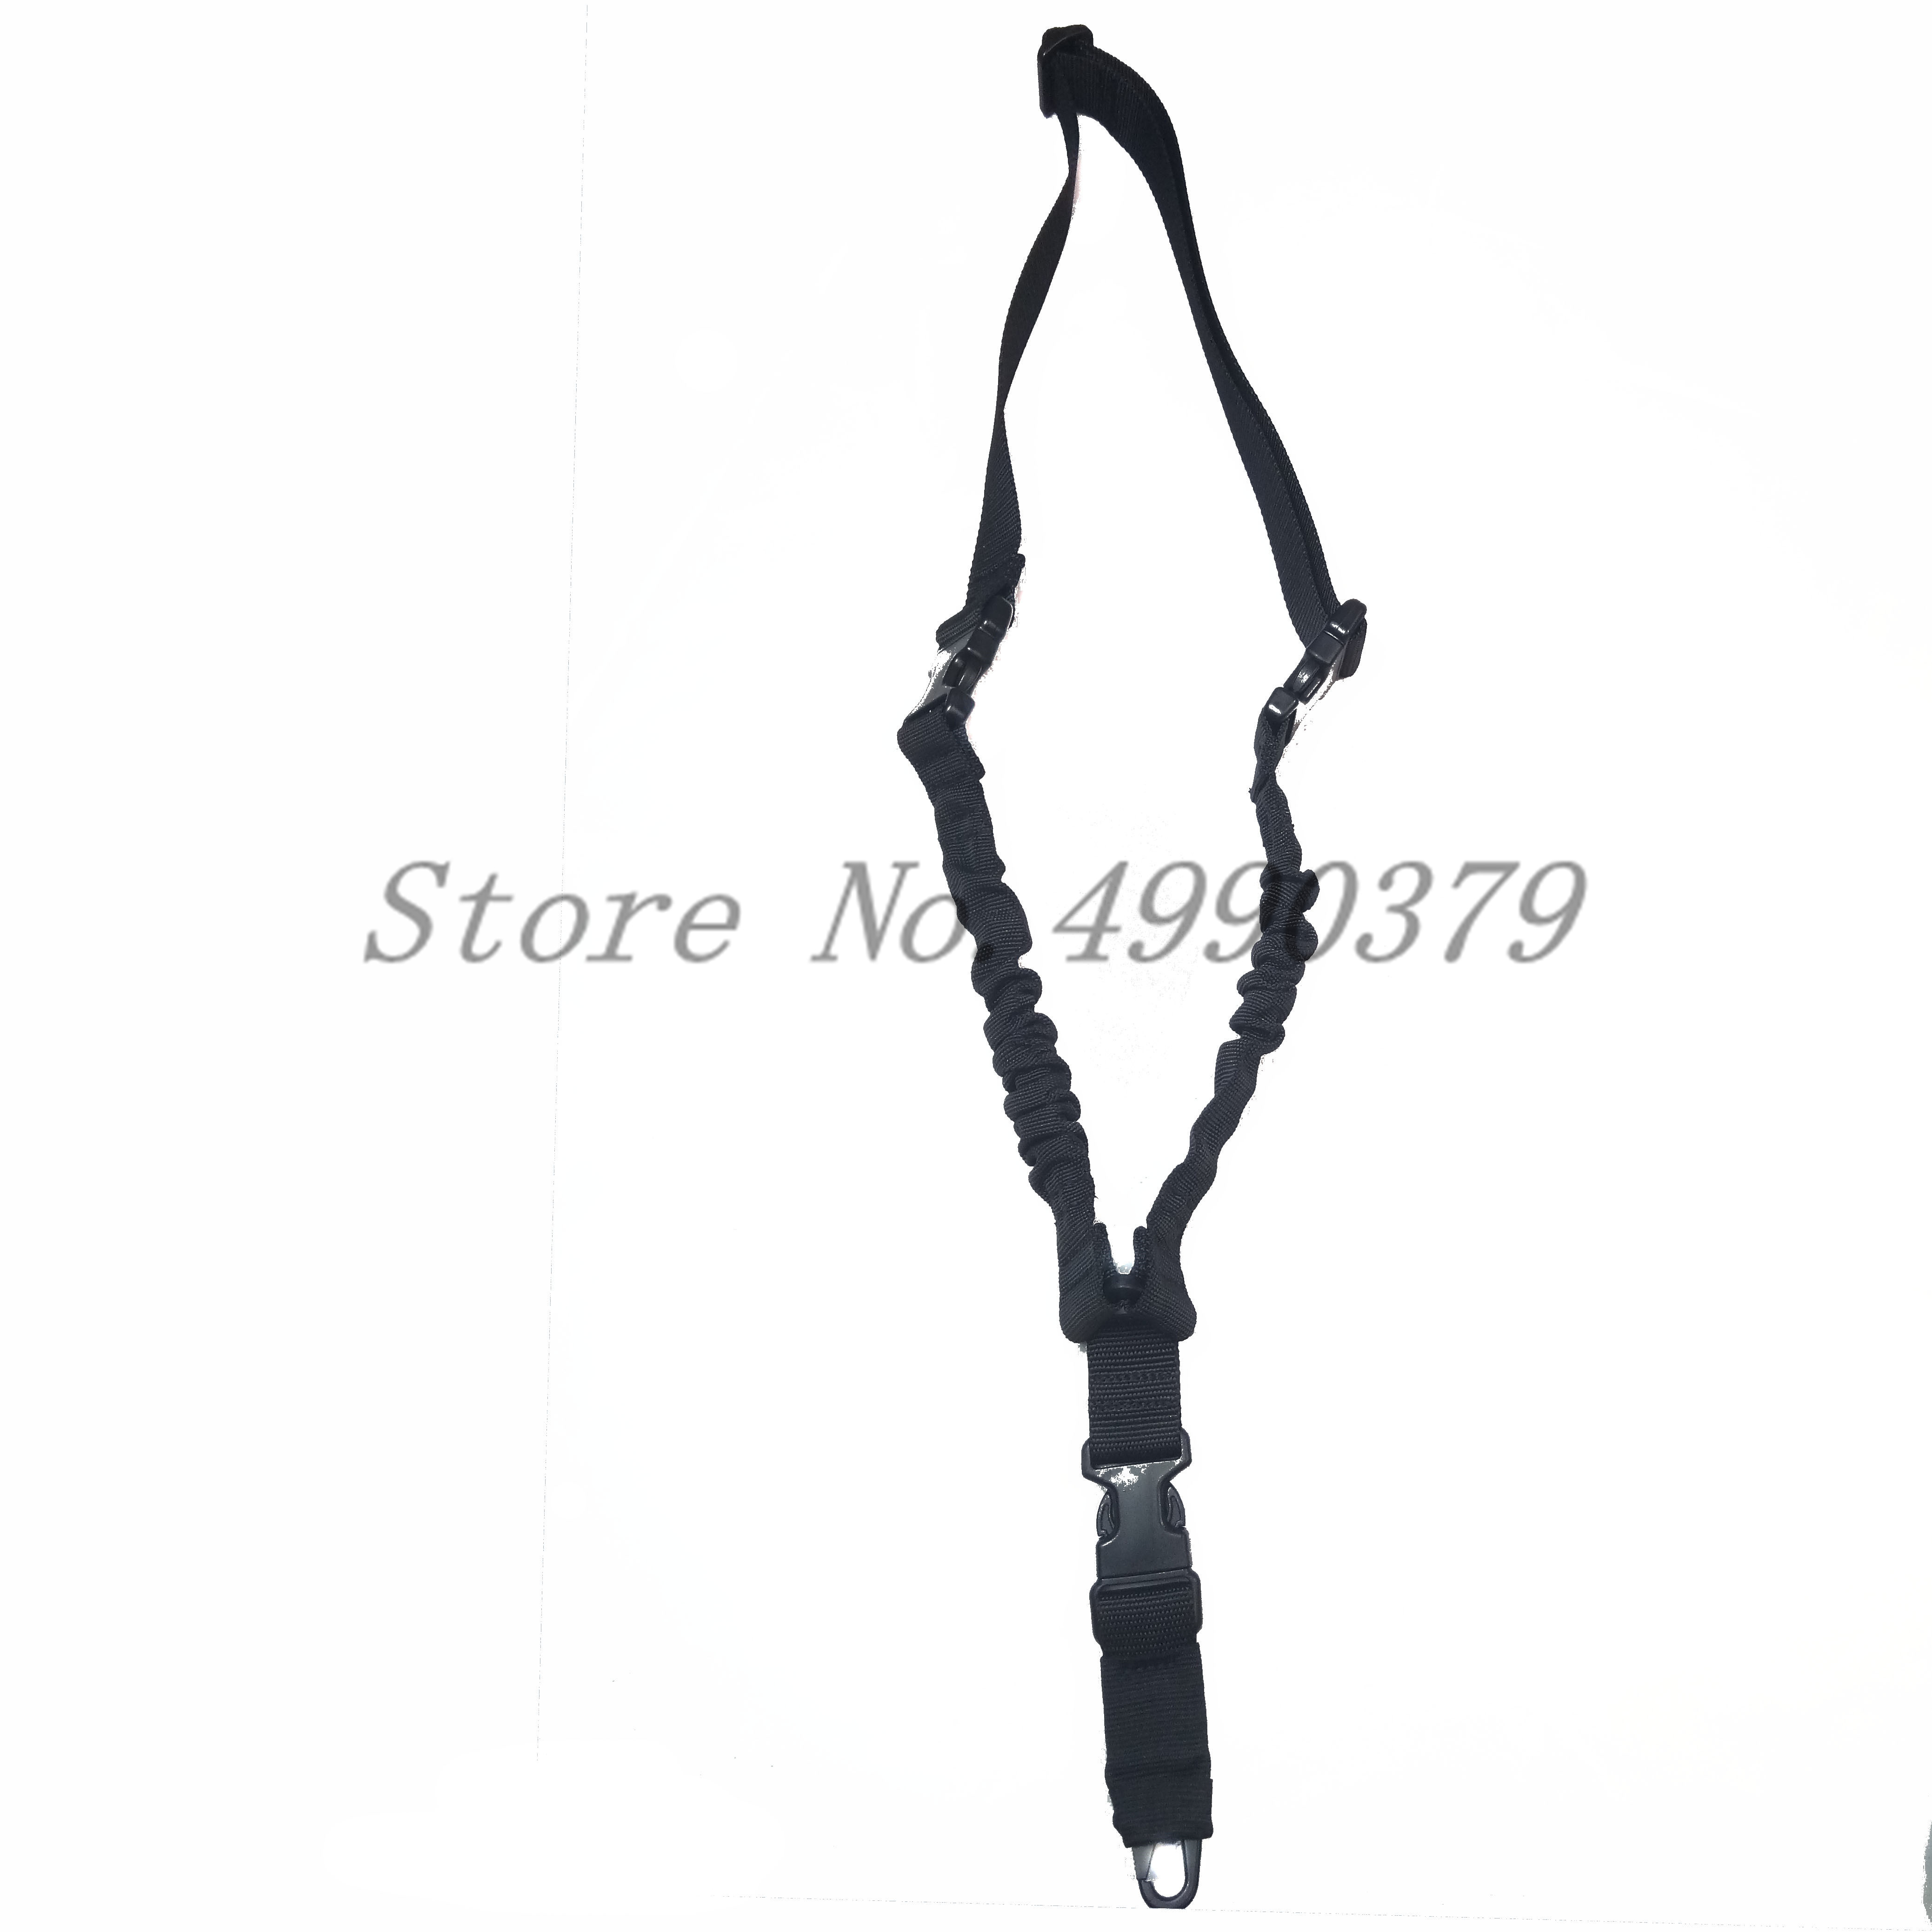 Image 4 - Tactical One PoiRifle Gun Sling Strap System Hunting Adjustable Nylon Single Point Rifle Strap Free Shipping-in Hunting Gun Accessories from Sports & Entertainment